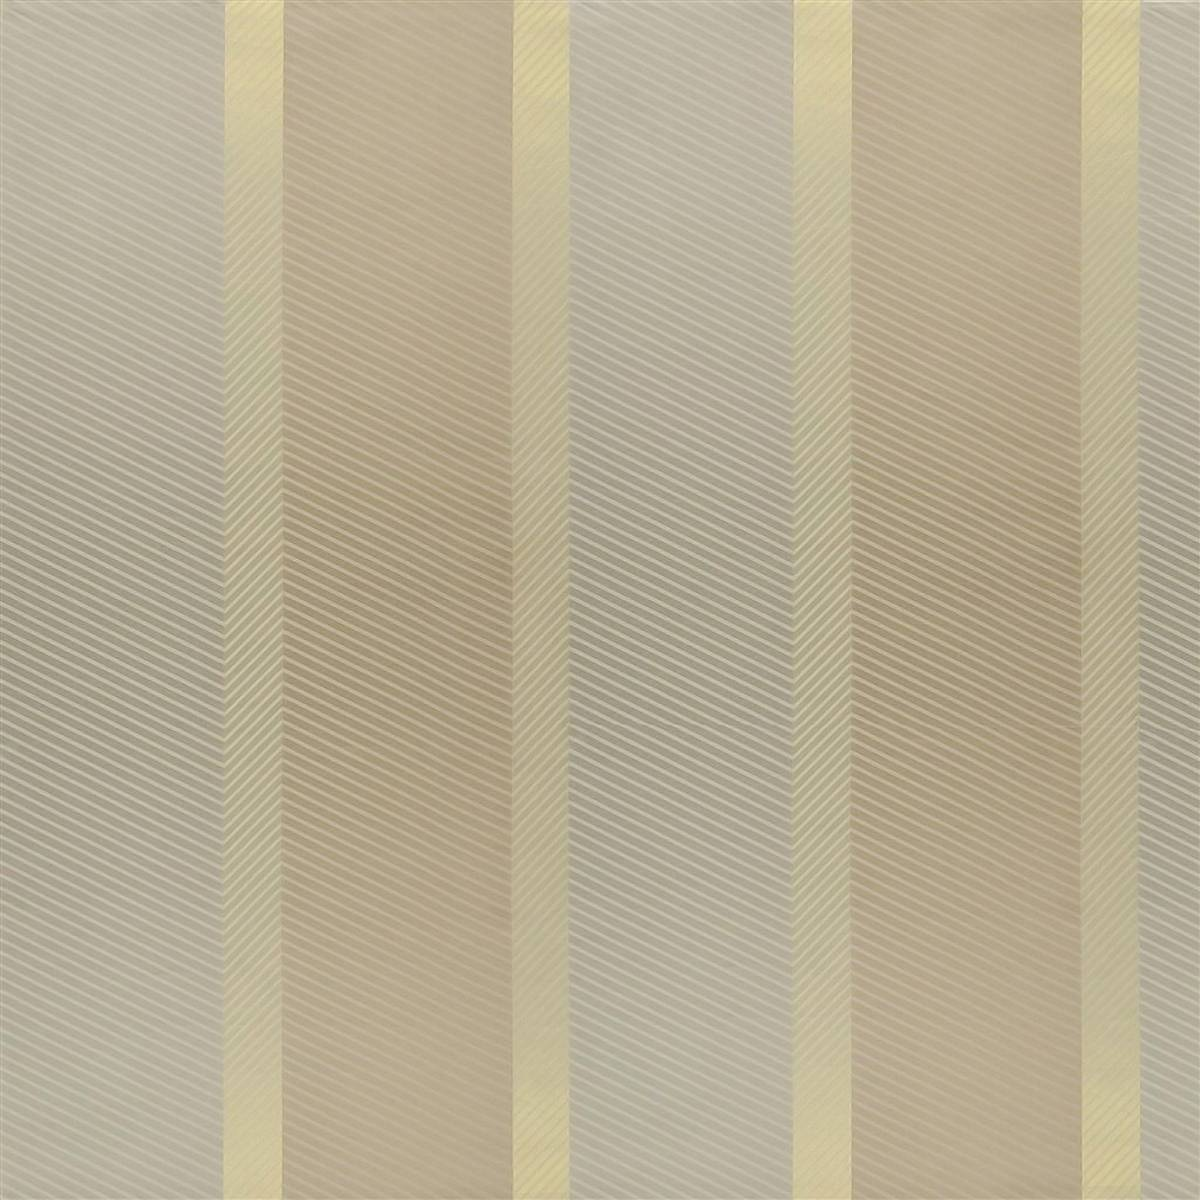 Loggia Fabric